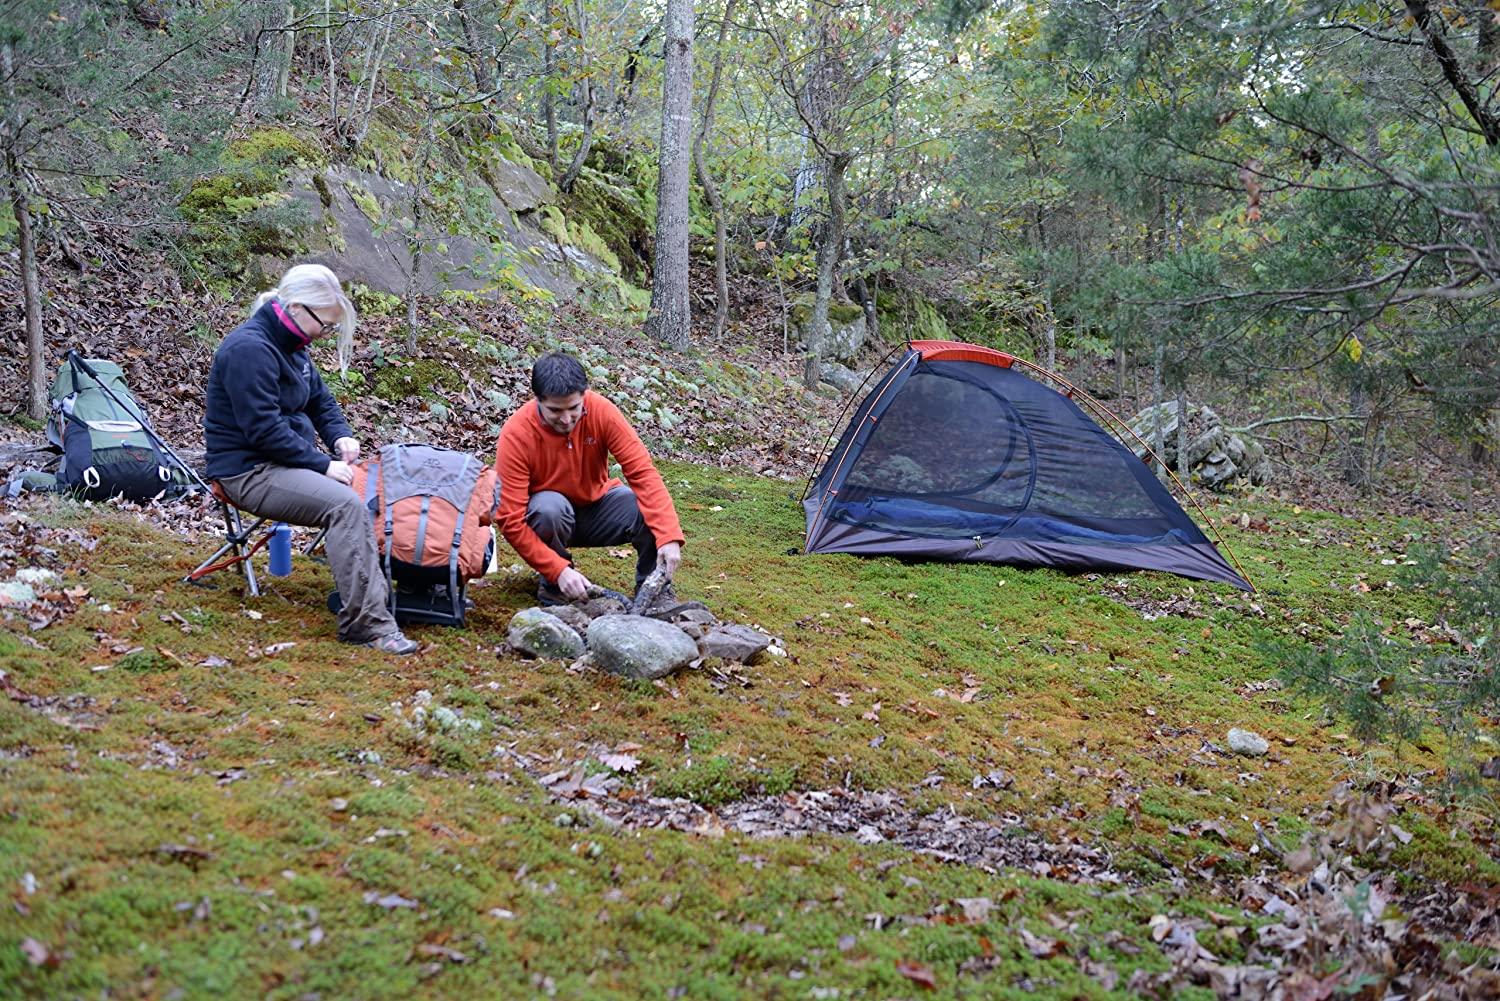 Amazon.com  ALPS Mountaineering Zephyr 2 Backpacking Tent  Sports u0026 Outdoors & Amazon.com : ALPS Mountaineering Zephyr 2 Backpacking Tent ...